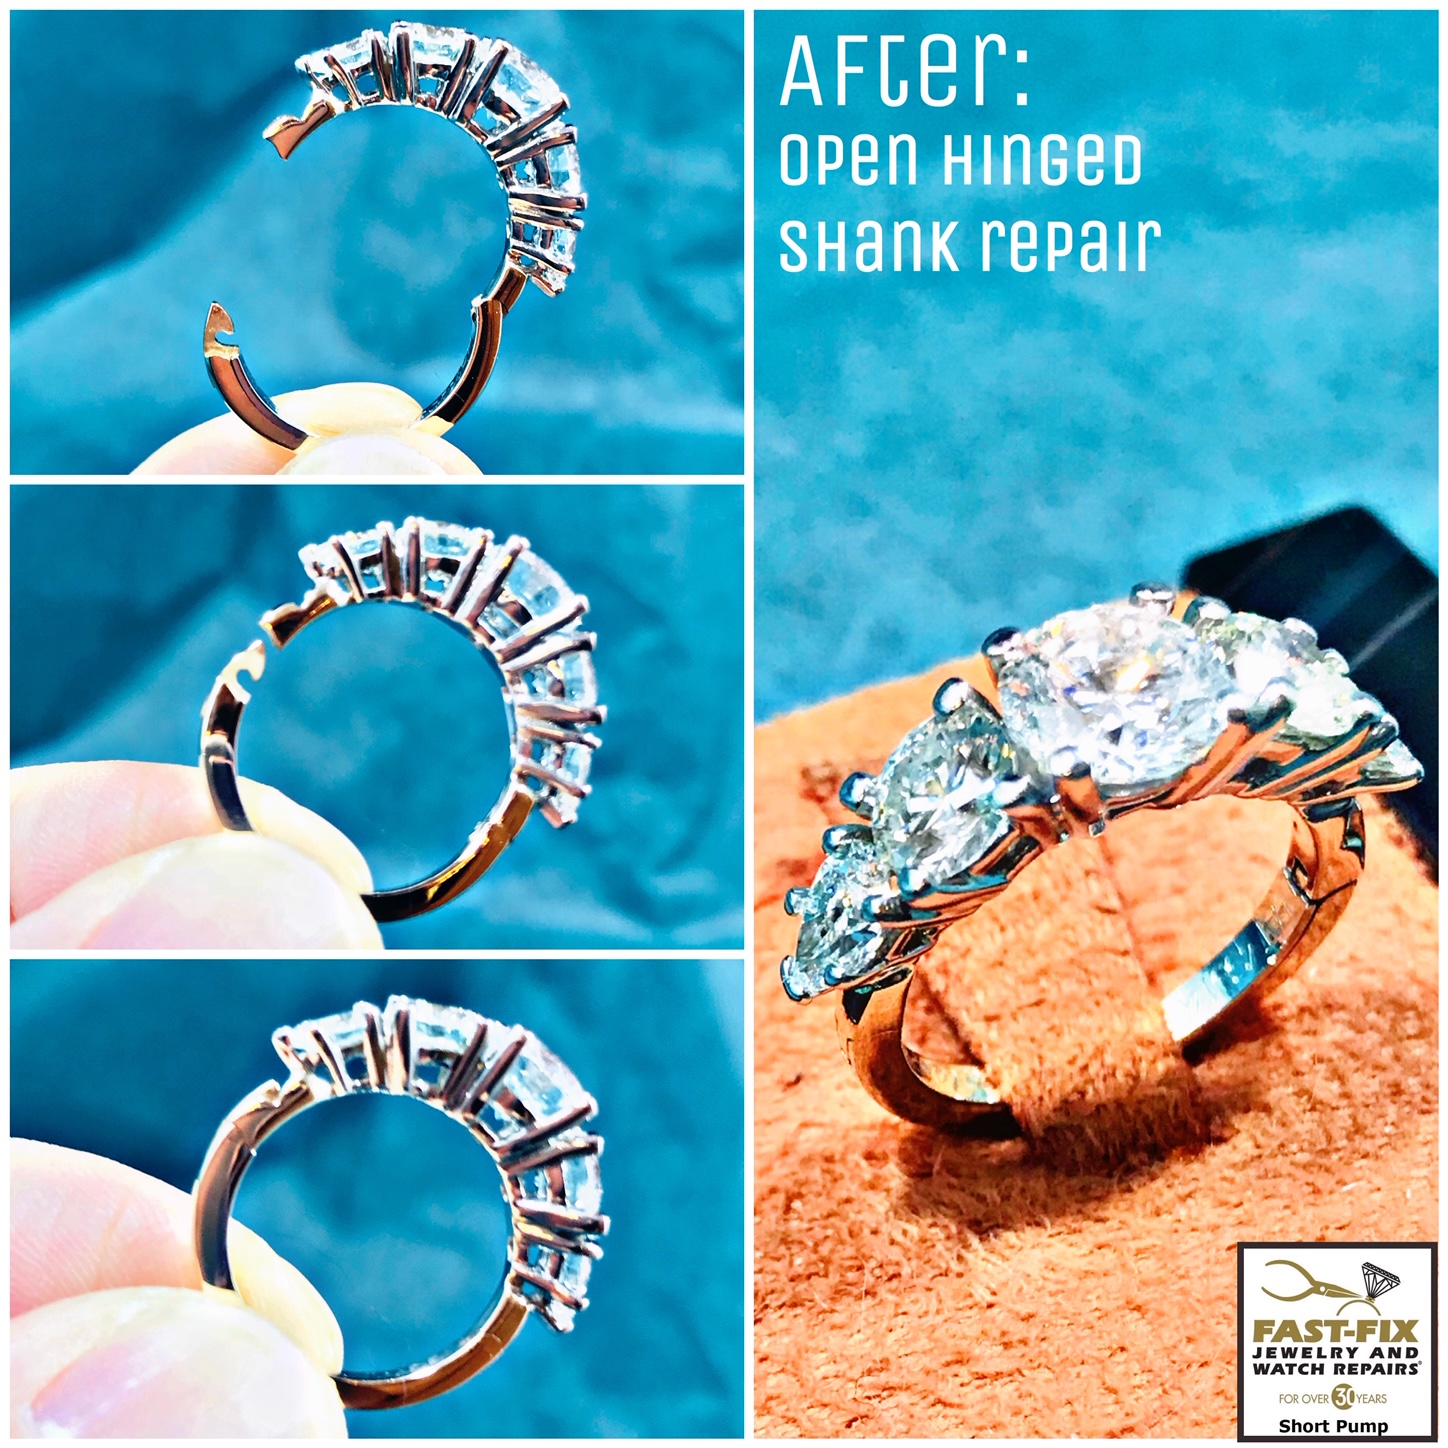 We repair this diamond ring with a open hinged shank for large knuckles